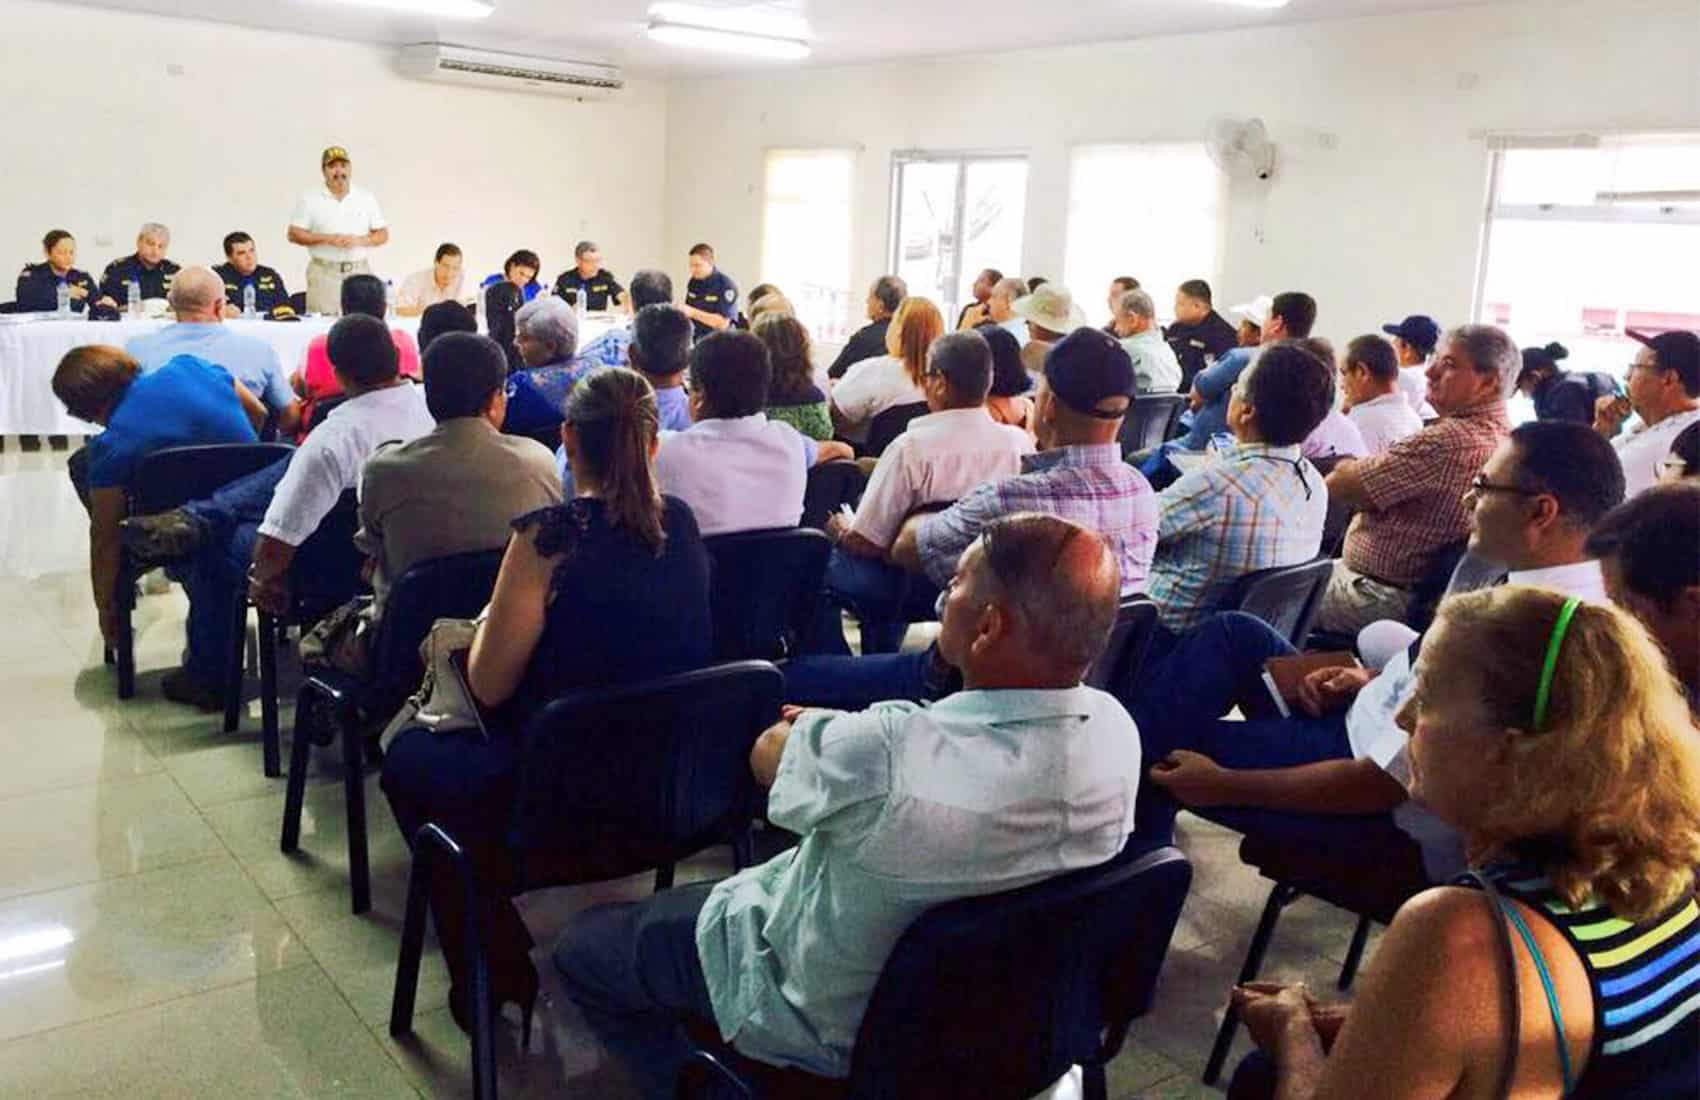 Costa Rica's public security minister meets with residents on crime.